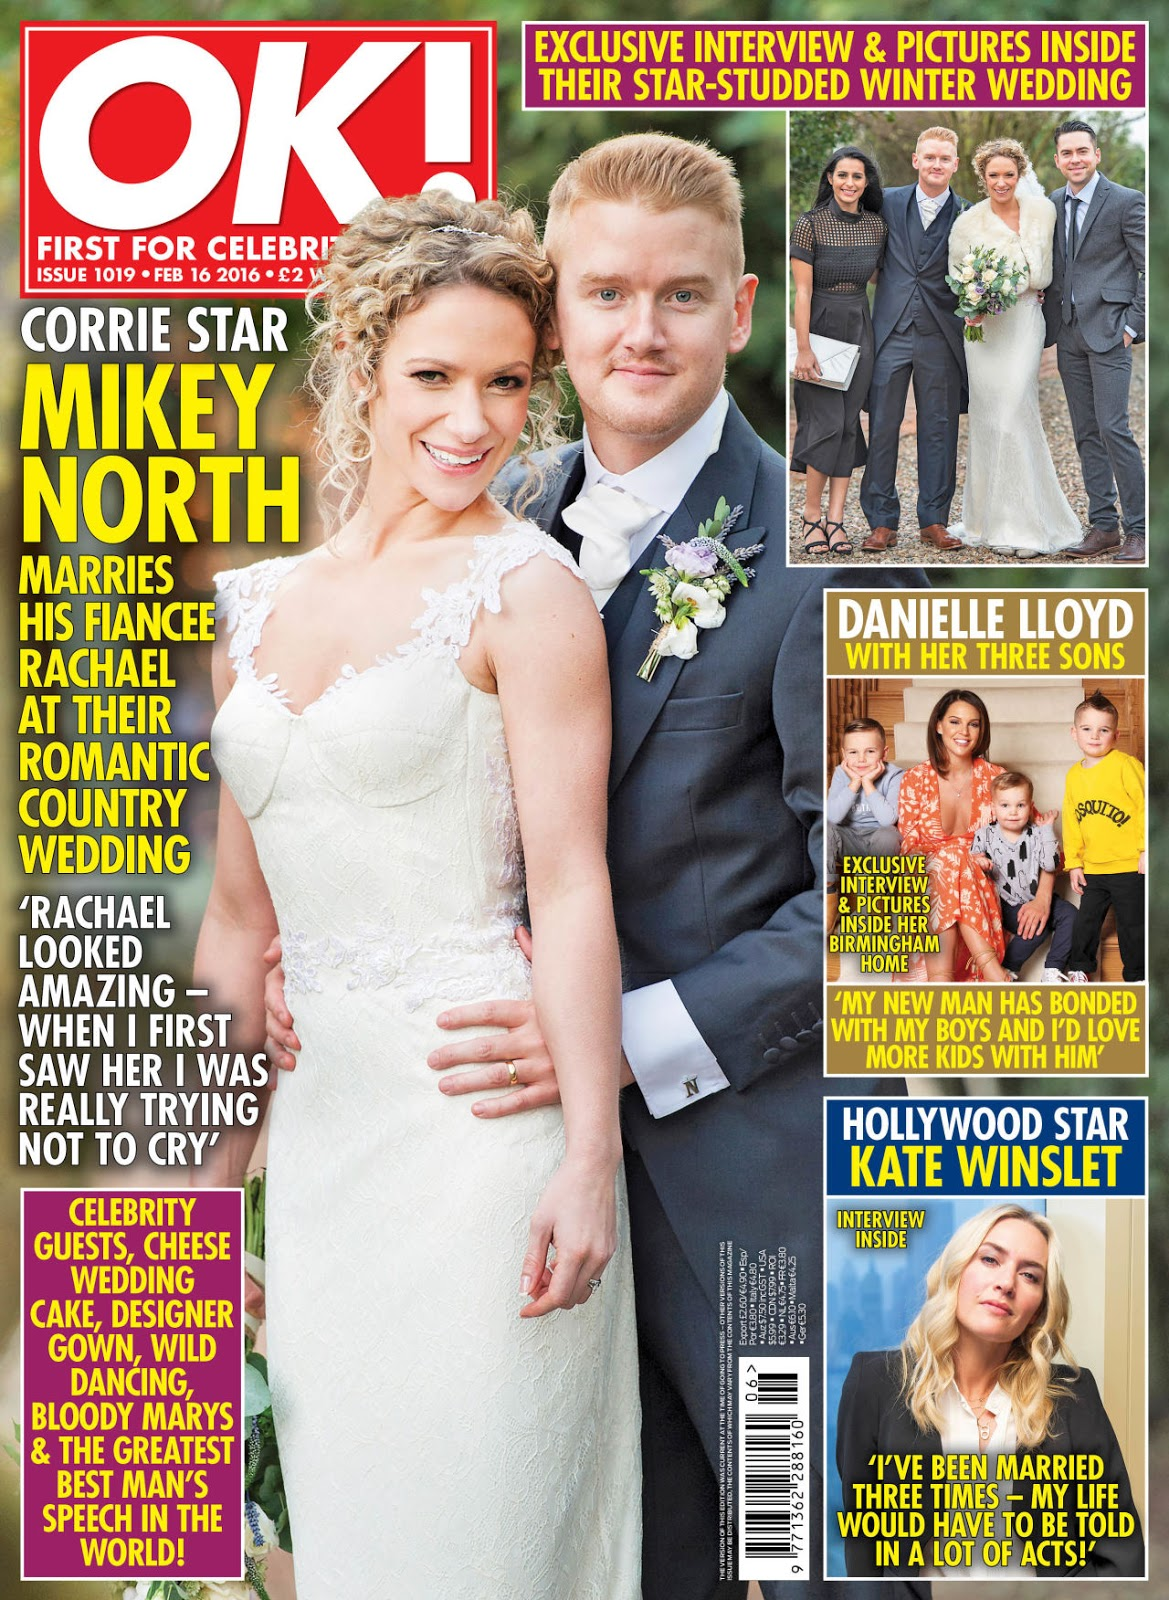 As We Reported Last Weekend Mikey North Married His Fiancee Rachael Isherwood Ok Magazine Have The Exclusive Pictures From Wedding And You Can Find